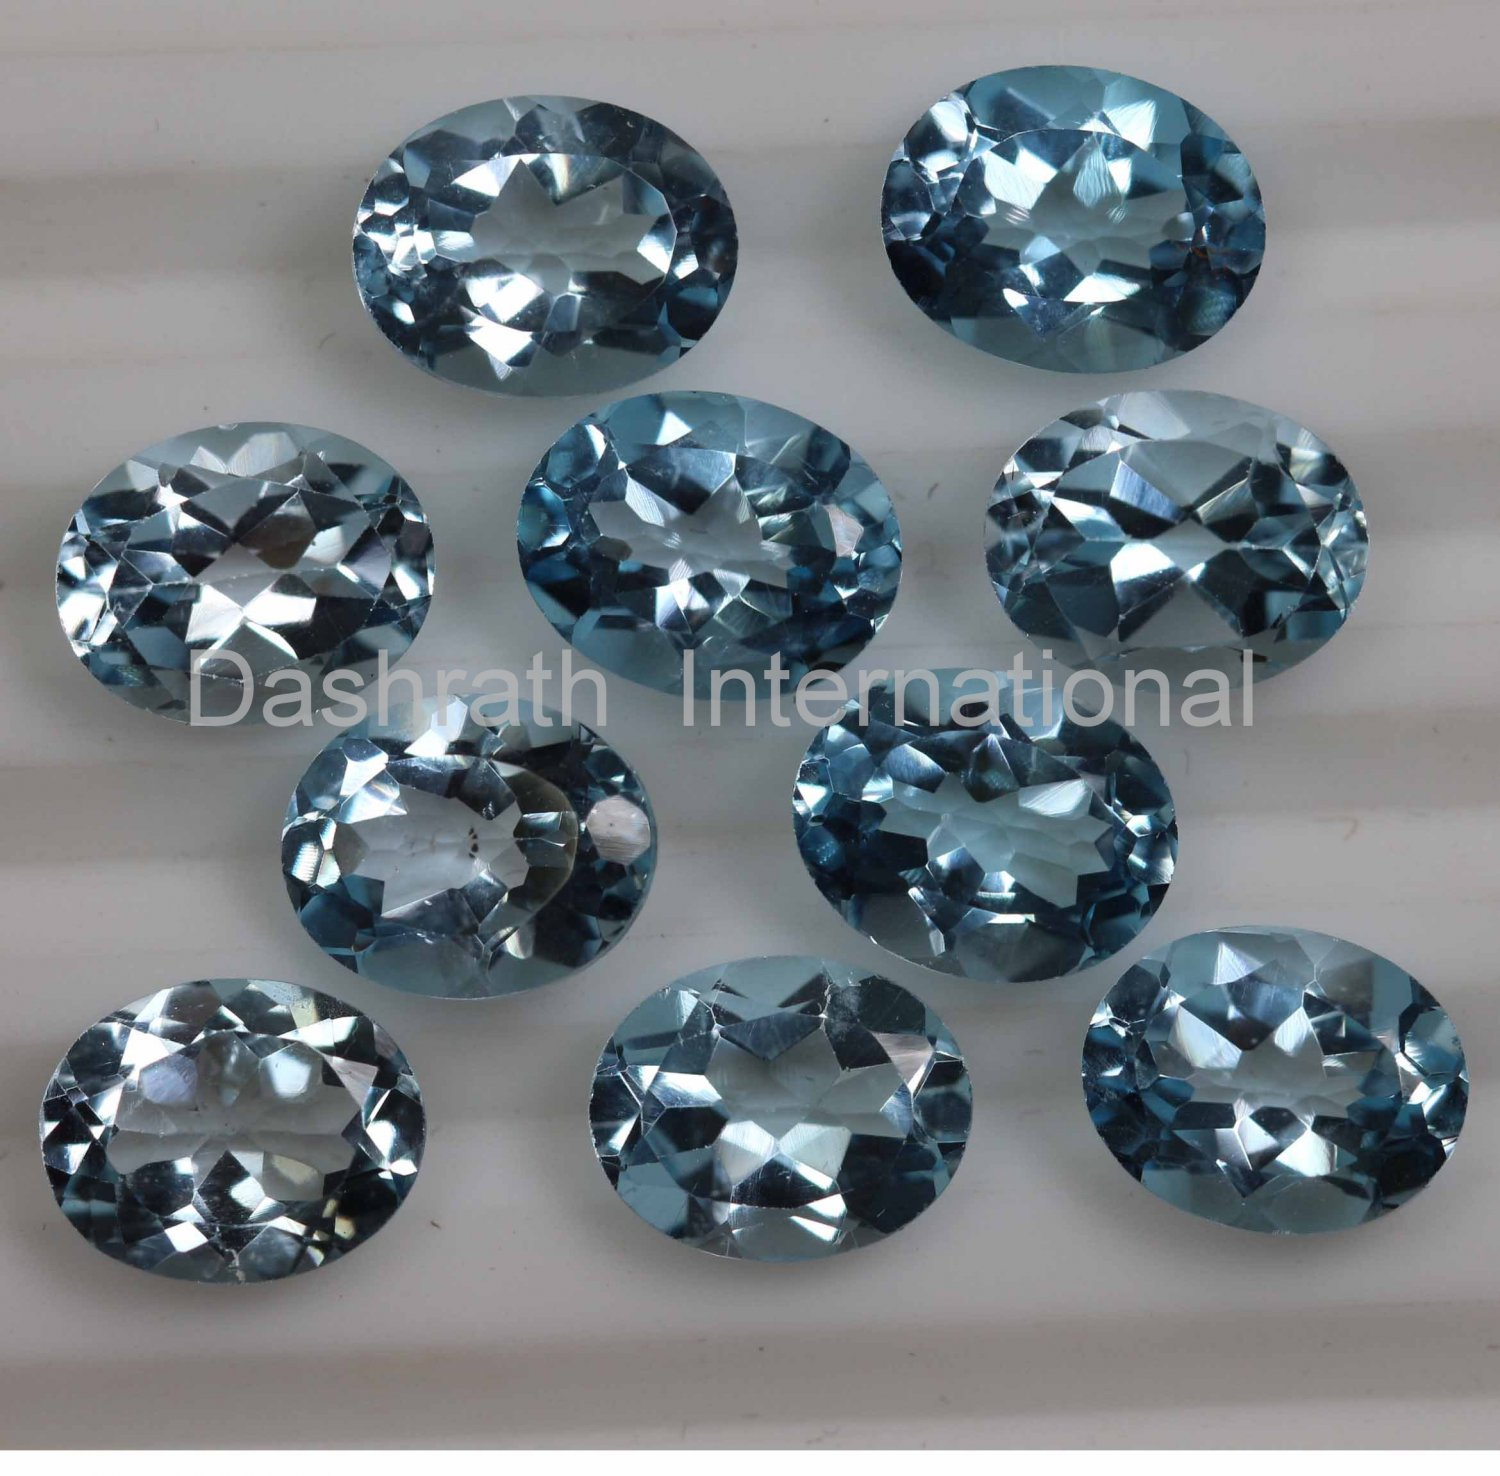 8x6mm  Natural Sky Blue Topaz Faceted Cut Oval  5 Pieces Lot  Top Quality Loose Gemstone